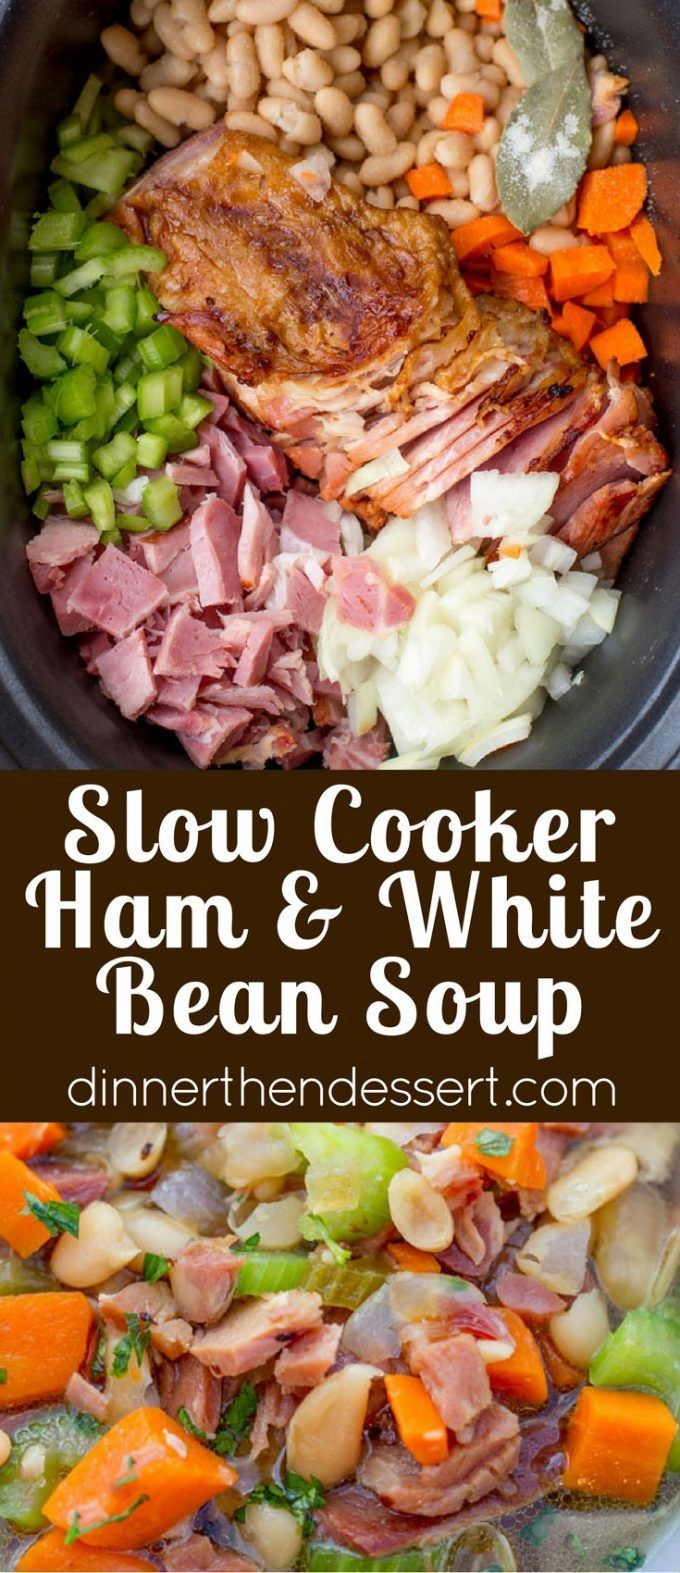 Slow Cooker Ham and White Bean Soup is the perfect recipe to make after you've enjoyed your holiday ham and want a cozy warm soup.